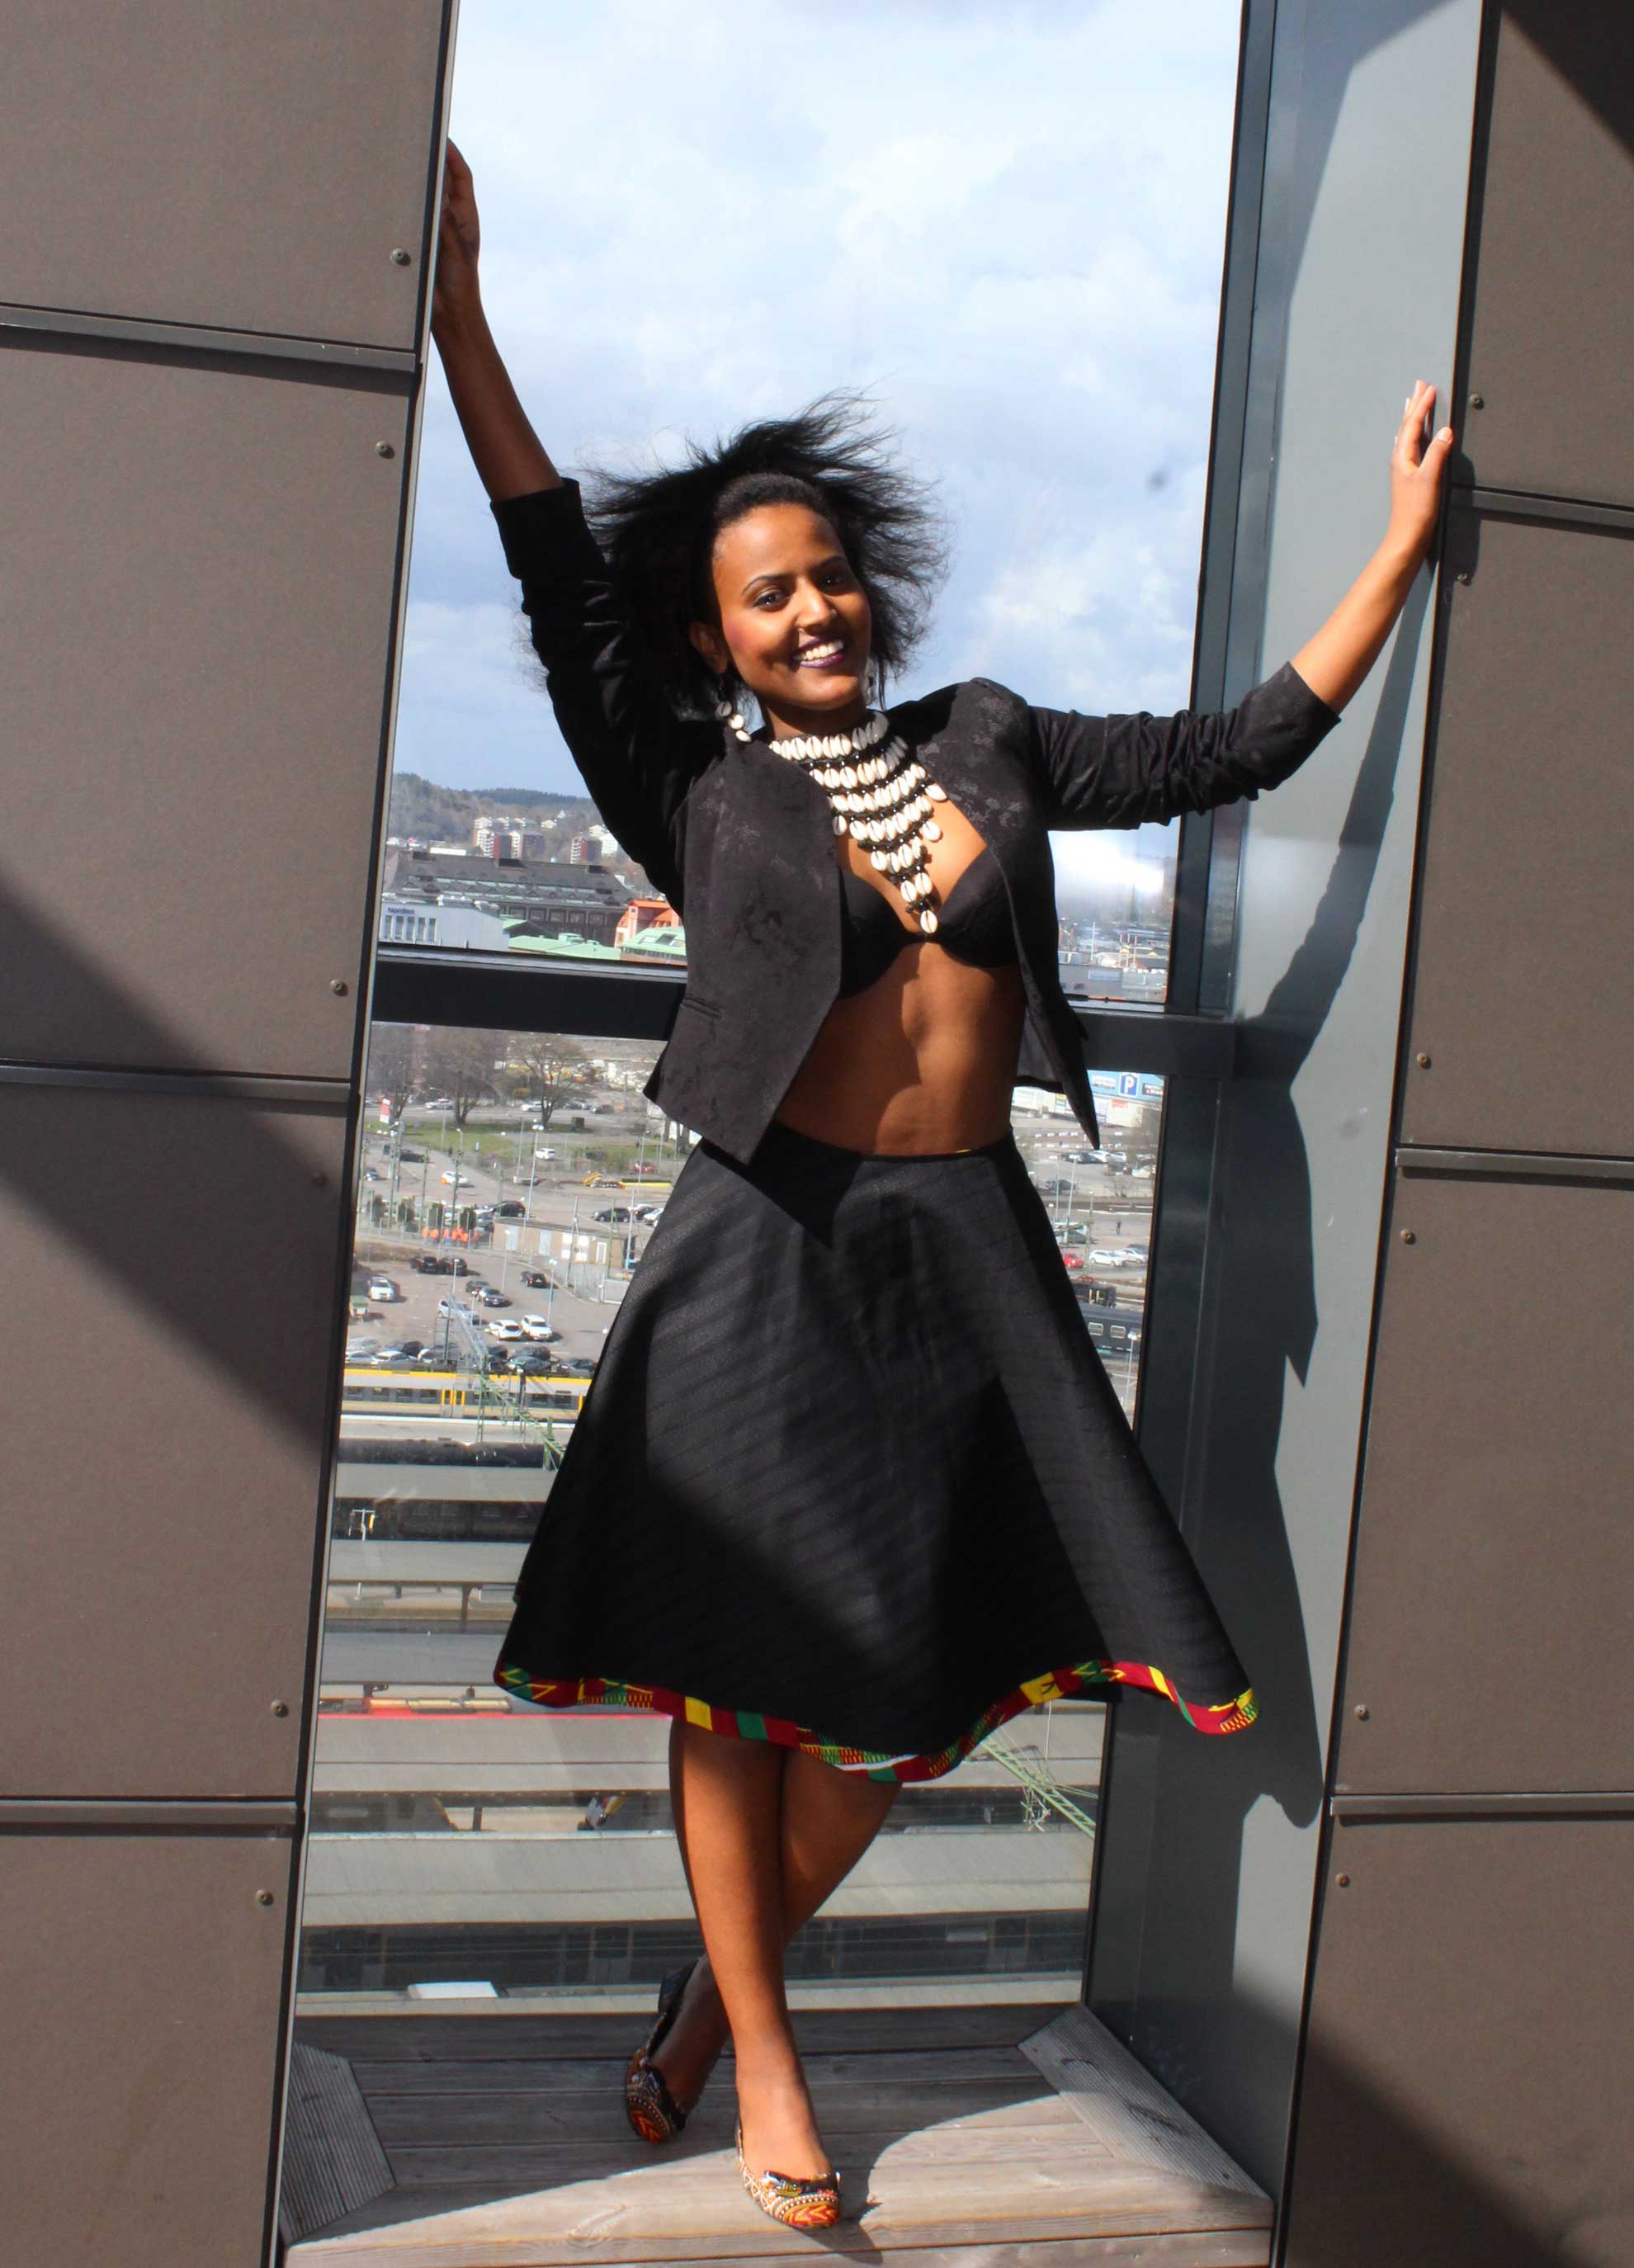 Black skirt with kente